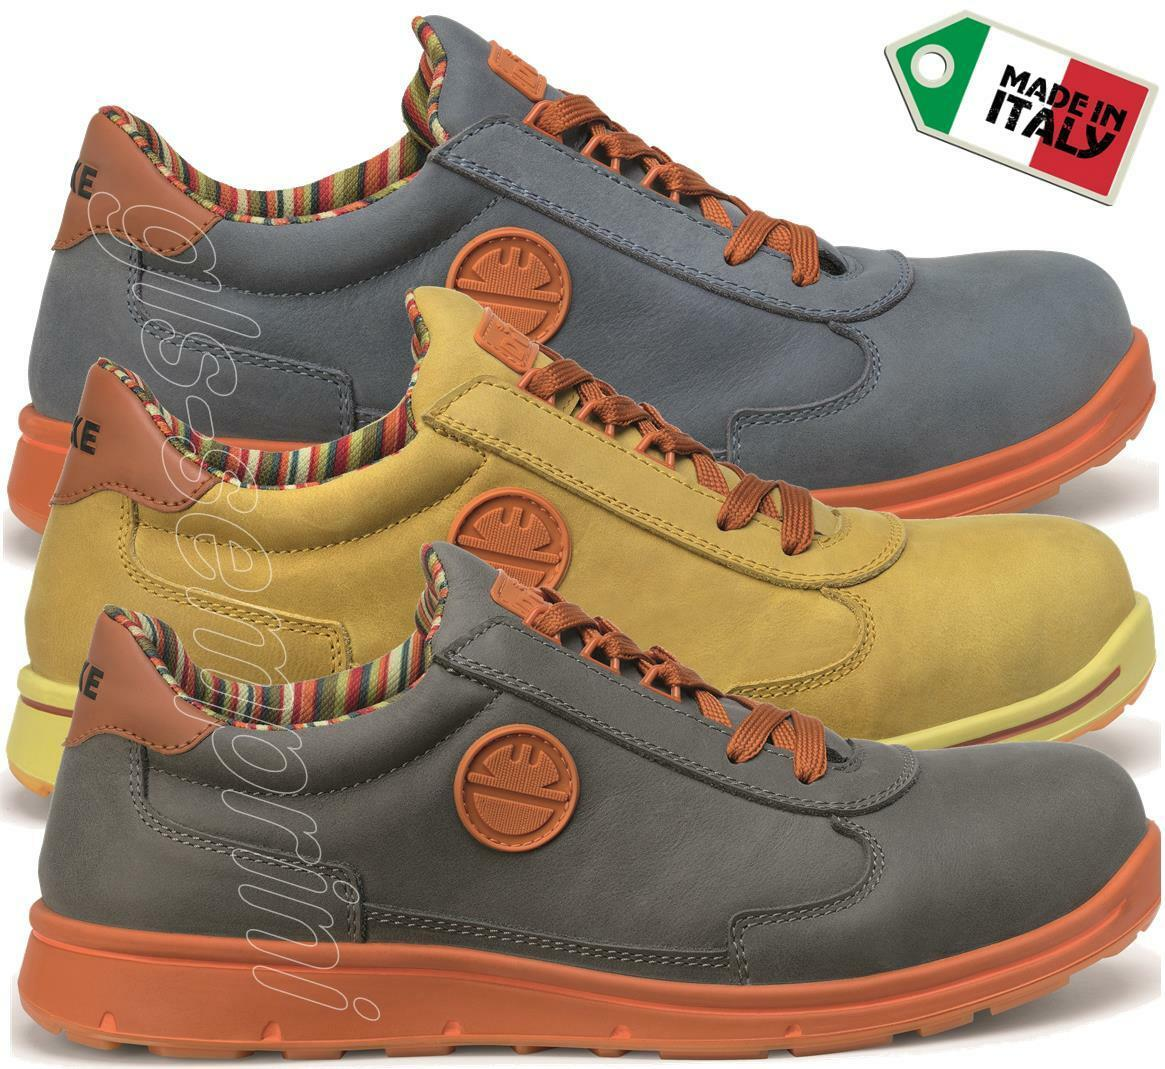 MENS LEATHER WORK WORK WORK SAFETY SHOES TRAINERS TOE CAP DIKE CYCLON CROSS S3 SRC 29012 964f67